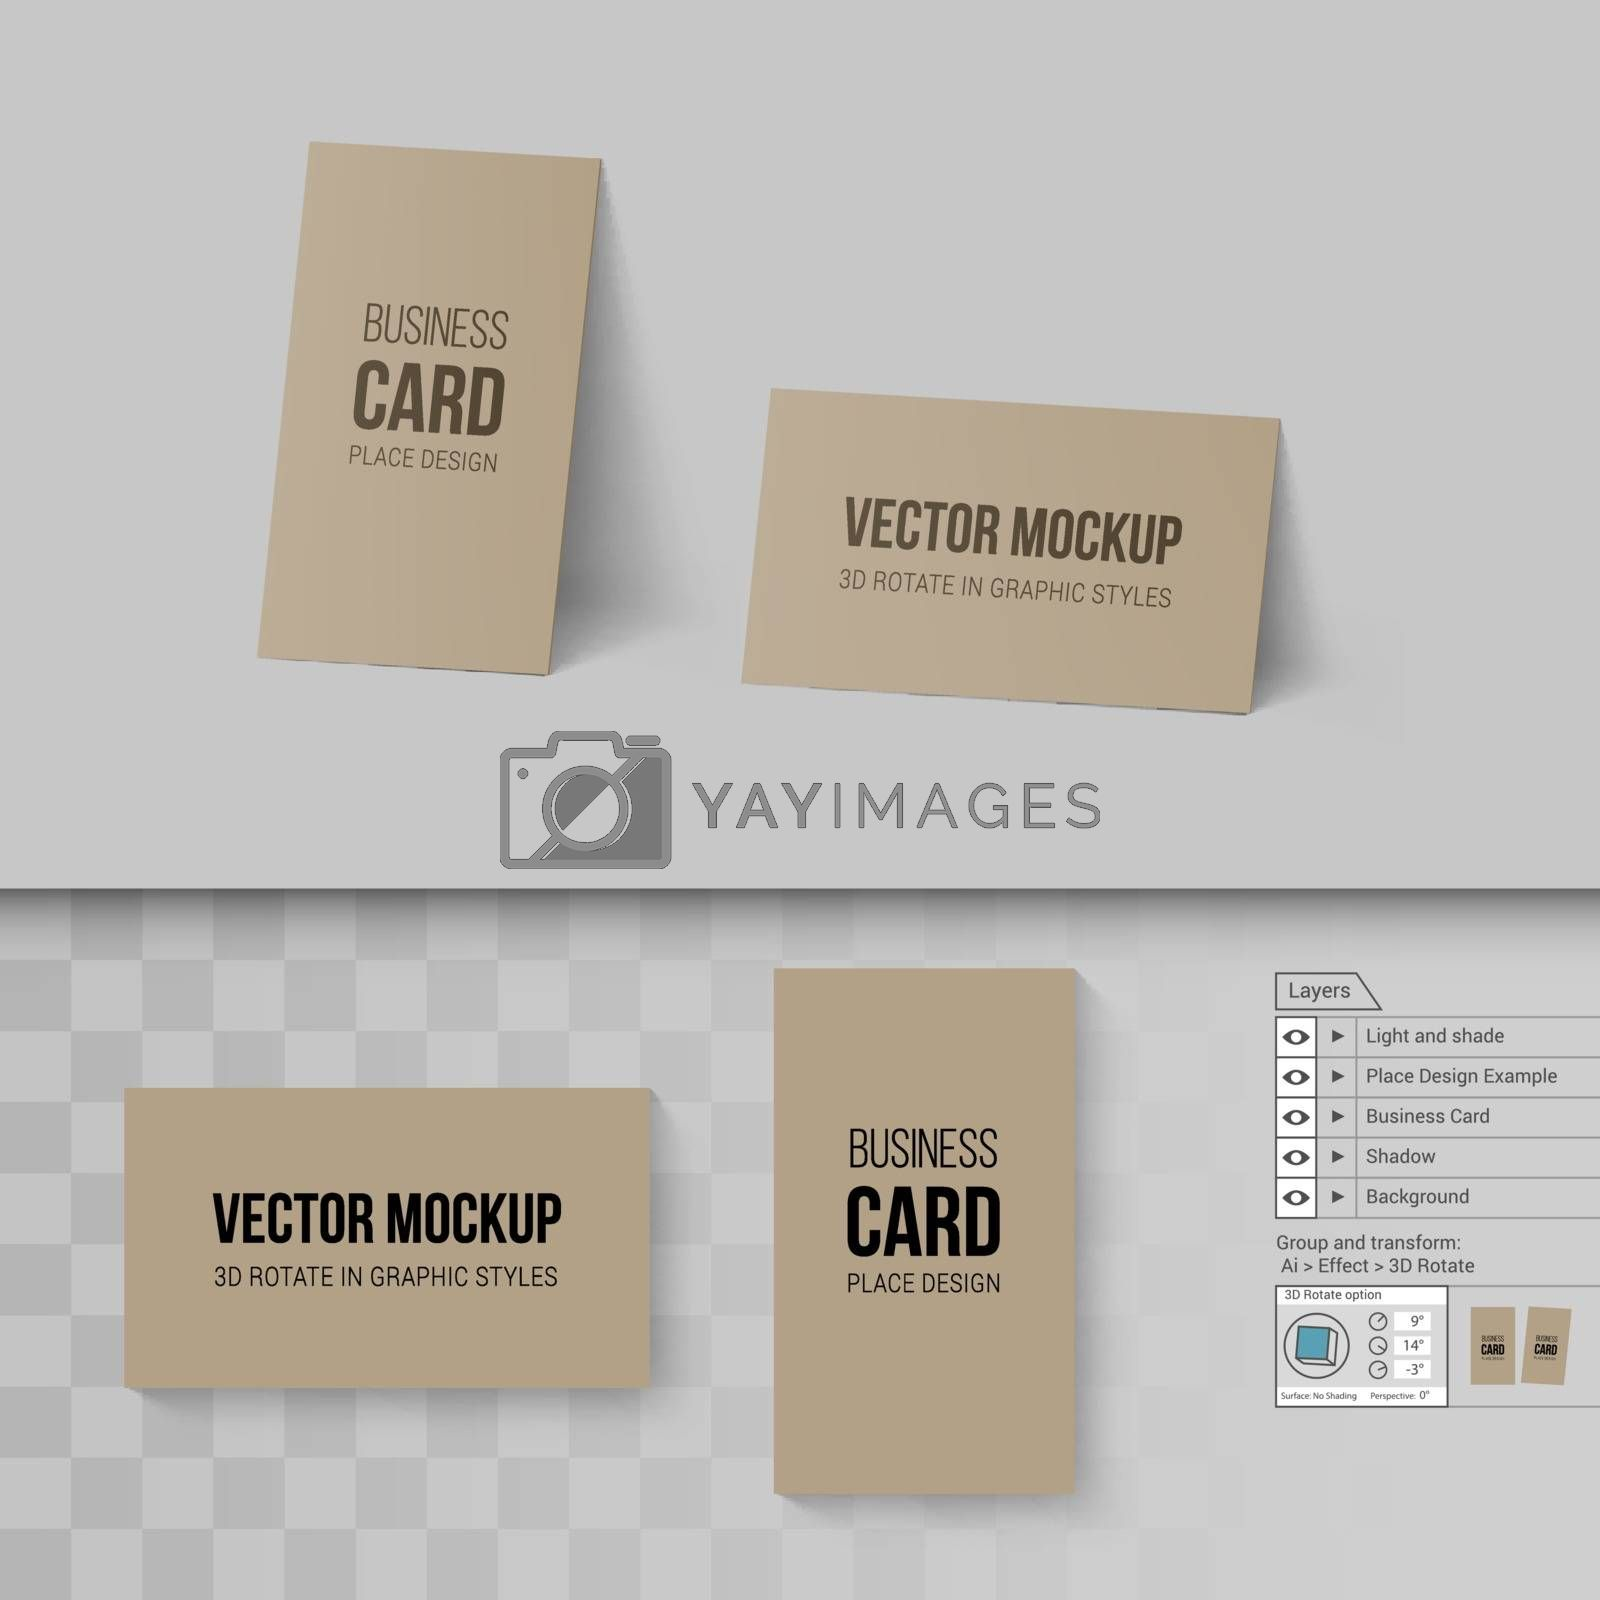 Brown Business Cards Template. Mock Up with 3D Rotate Options on Gray and Transparent Background